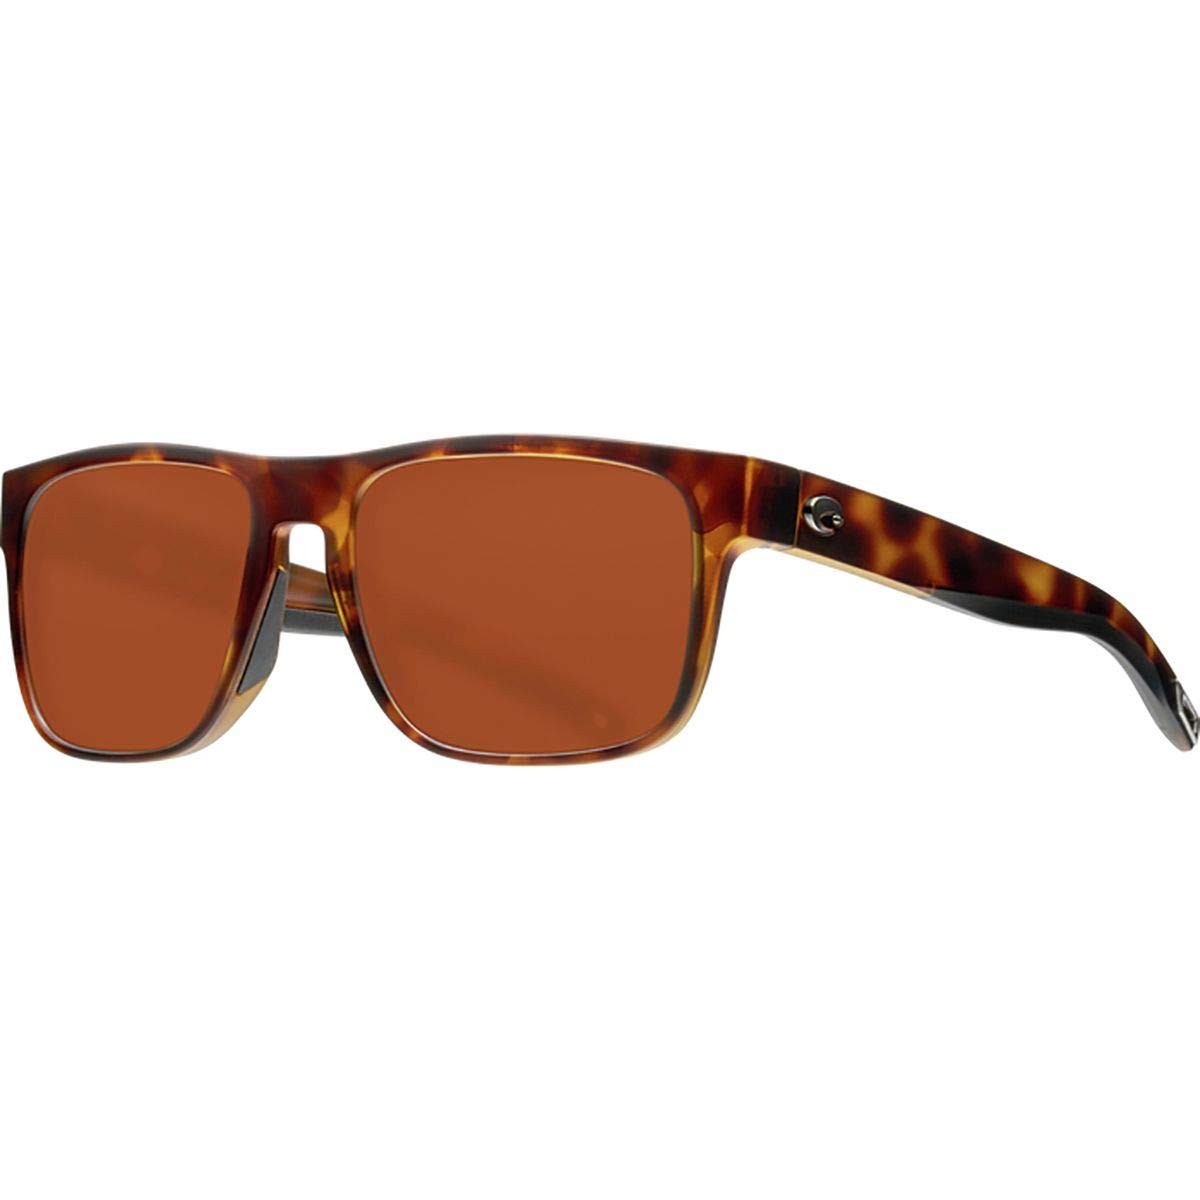 Costa Spearo 580G Polarized Sunglasses Matte Tortoise Frame/Copper 580G, One Size